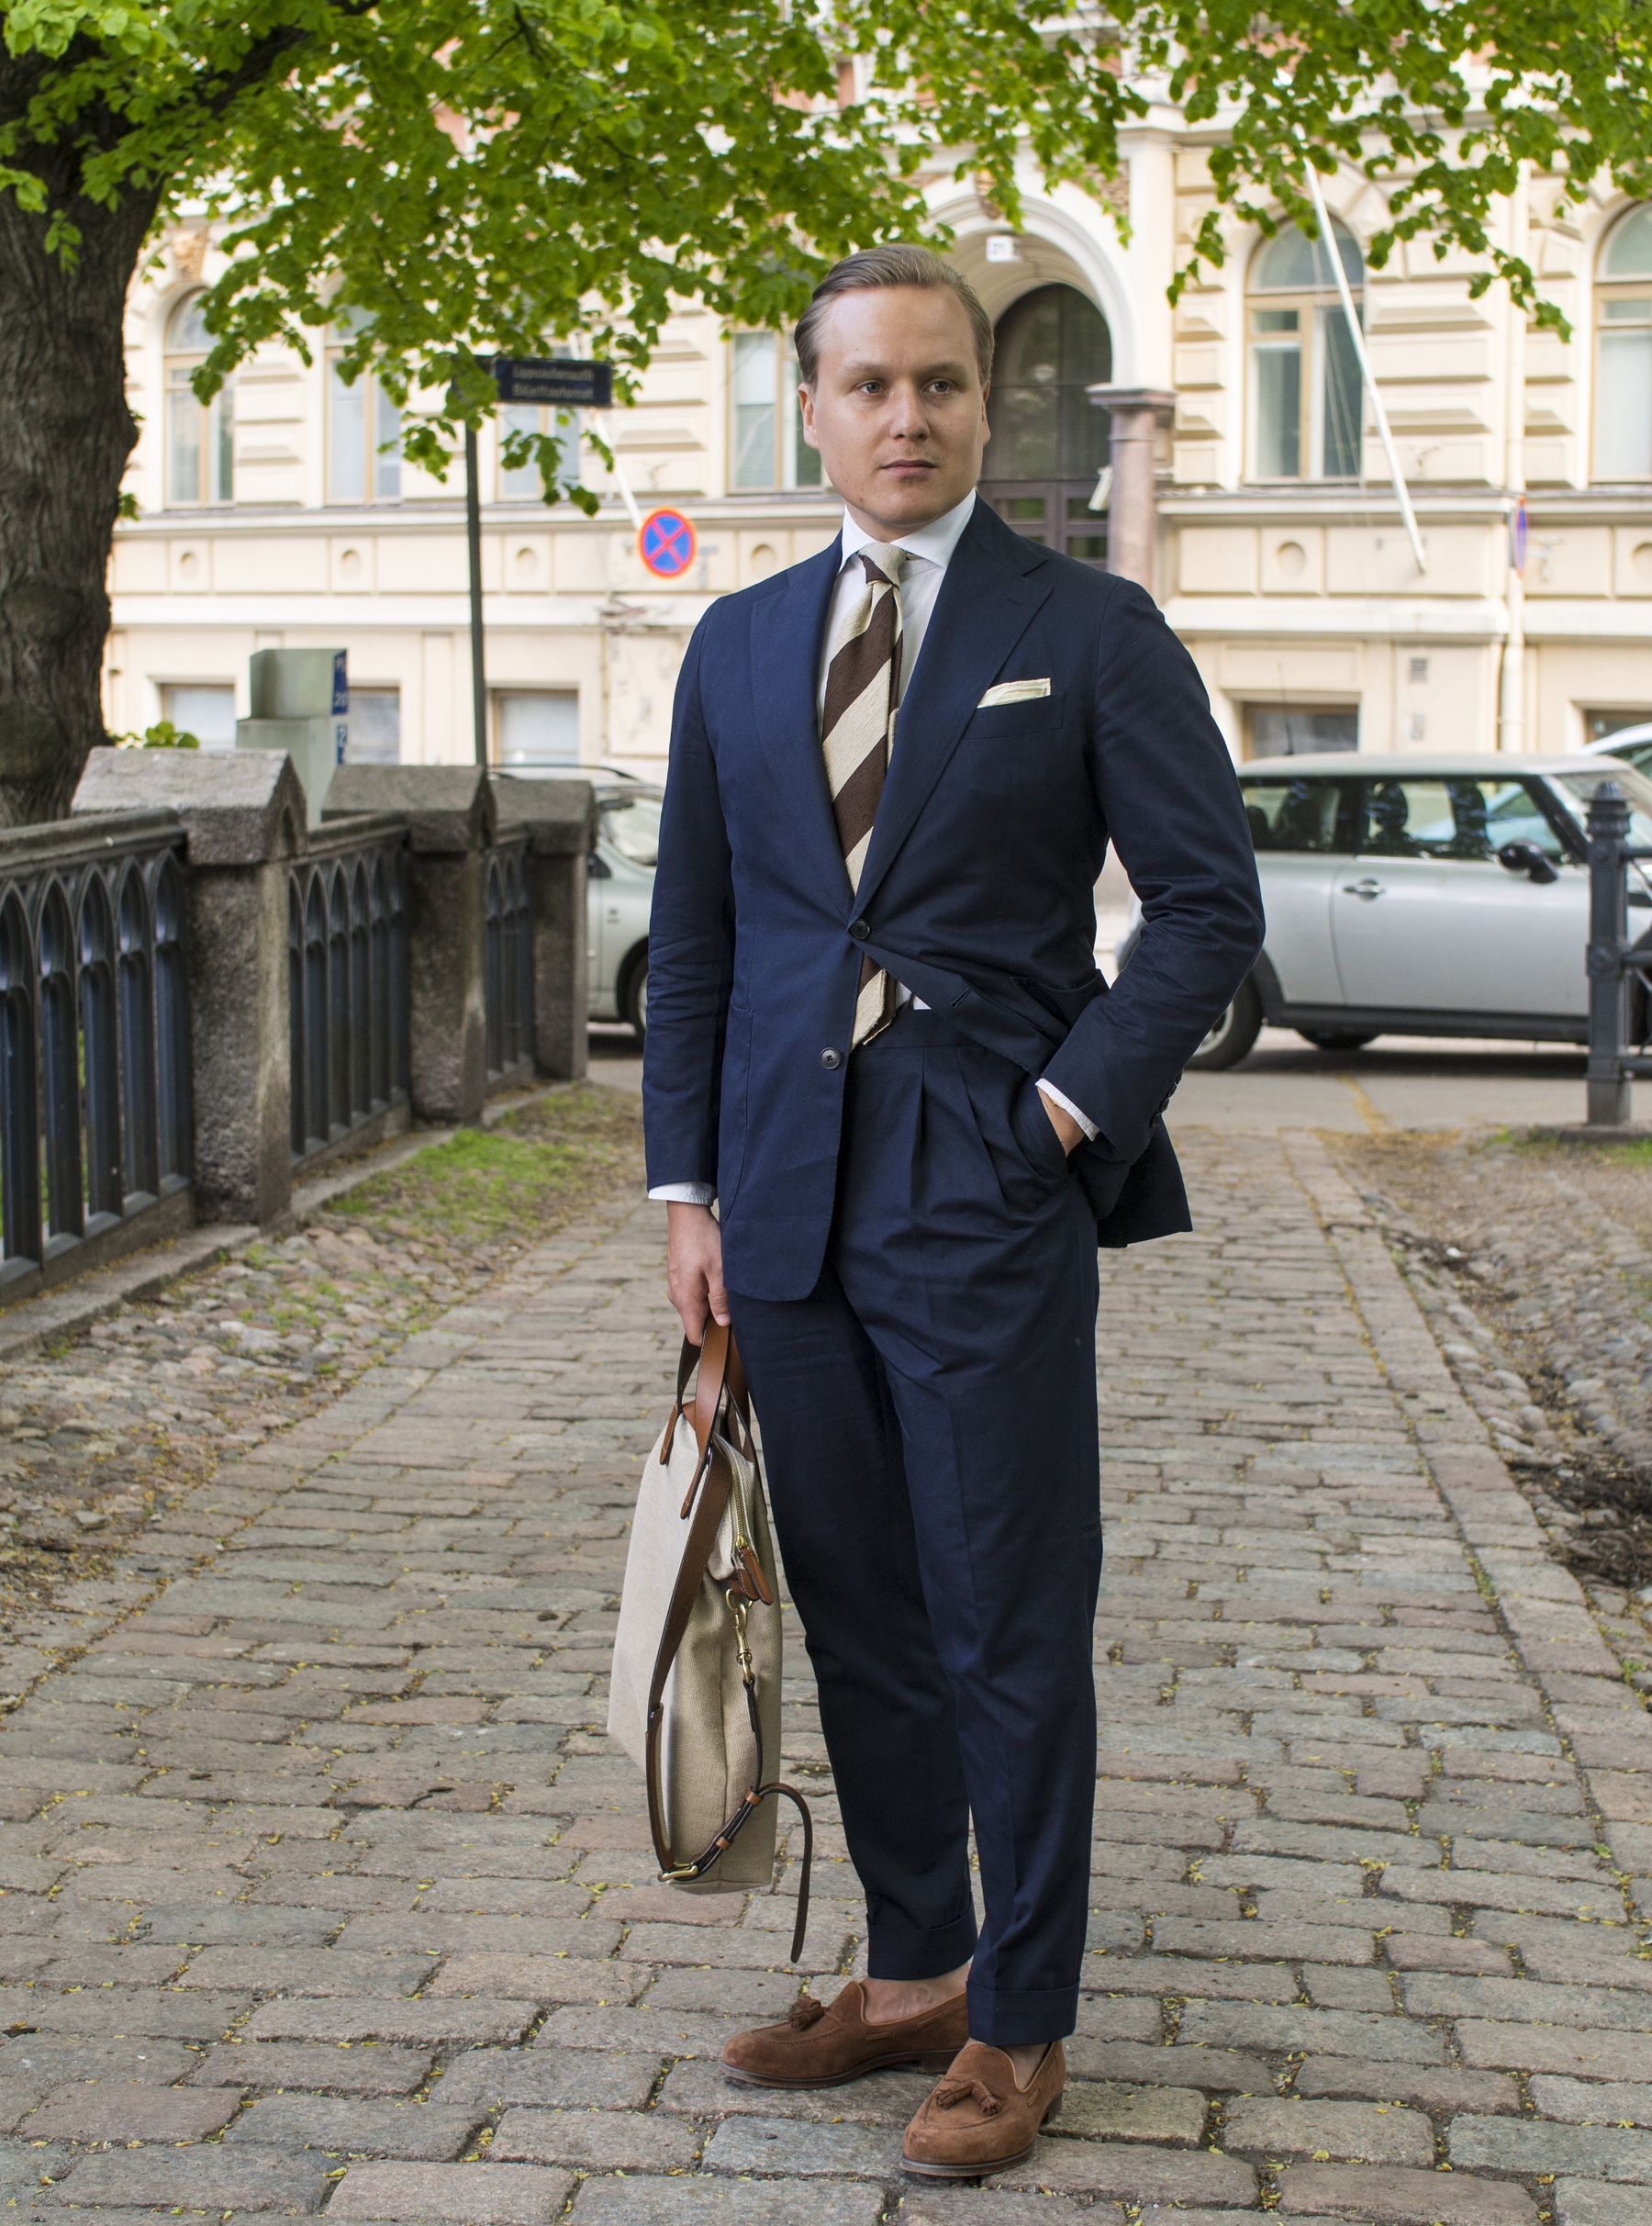 Men's Most Versatile Summer Suit - The Navy Cotton Suit